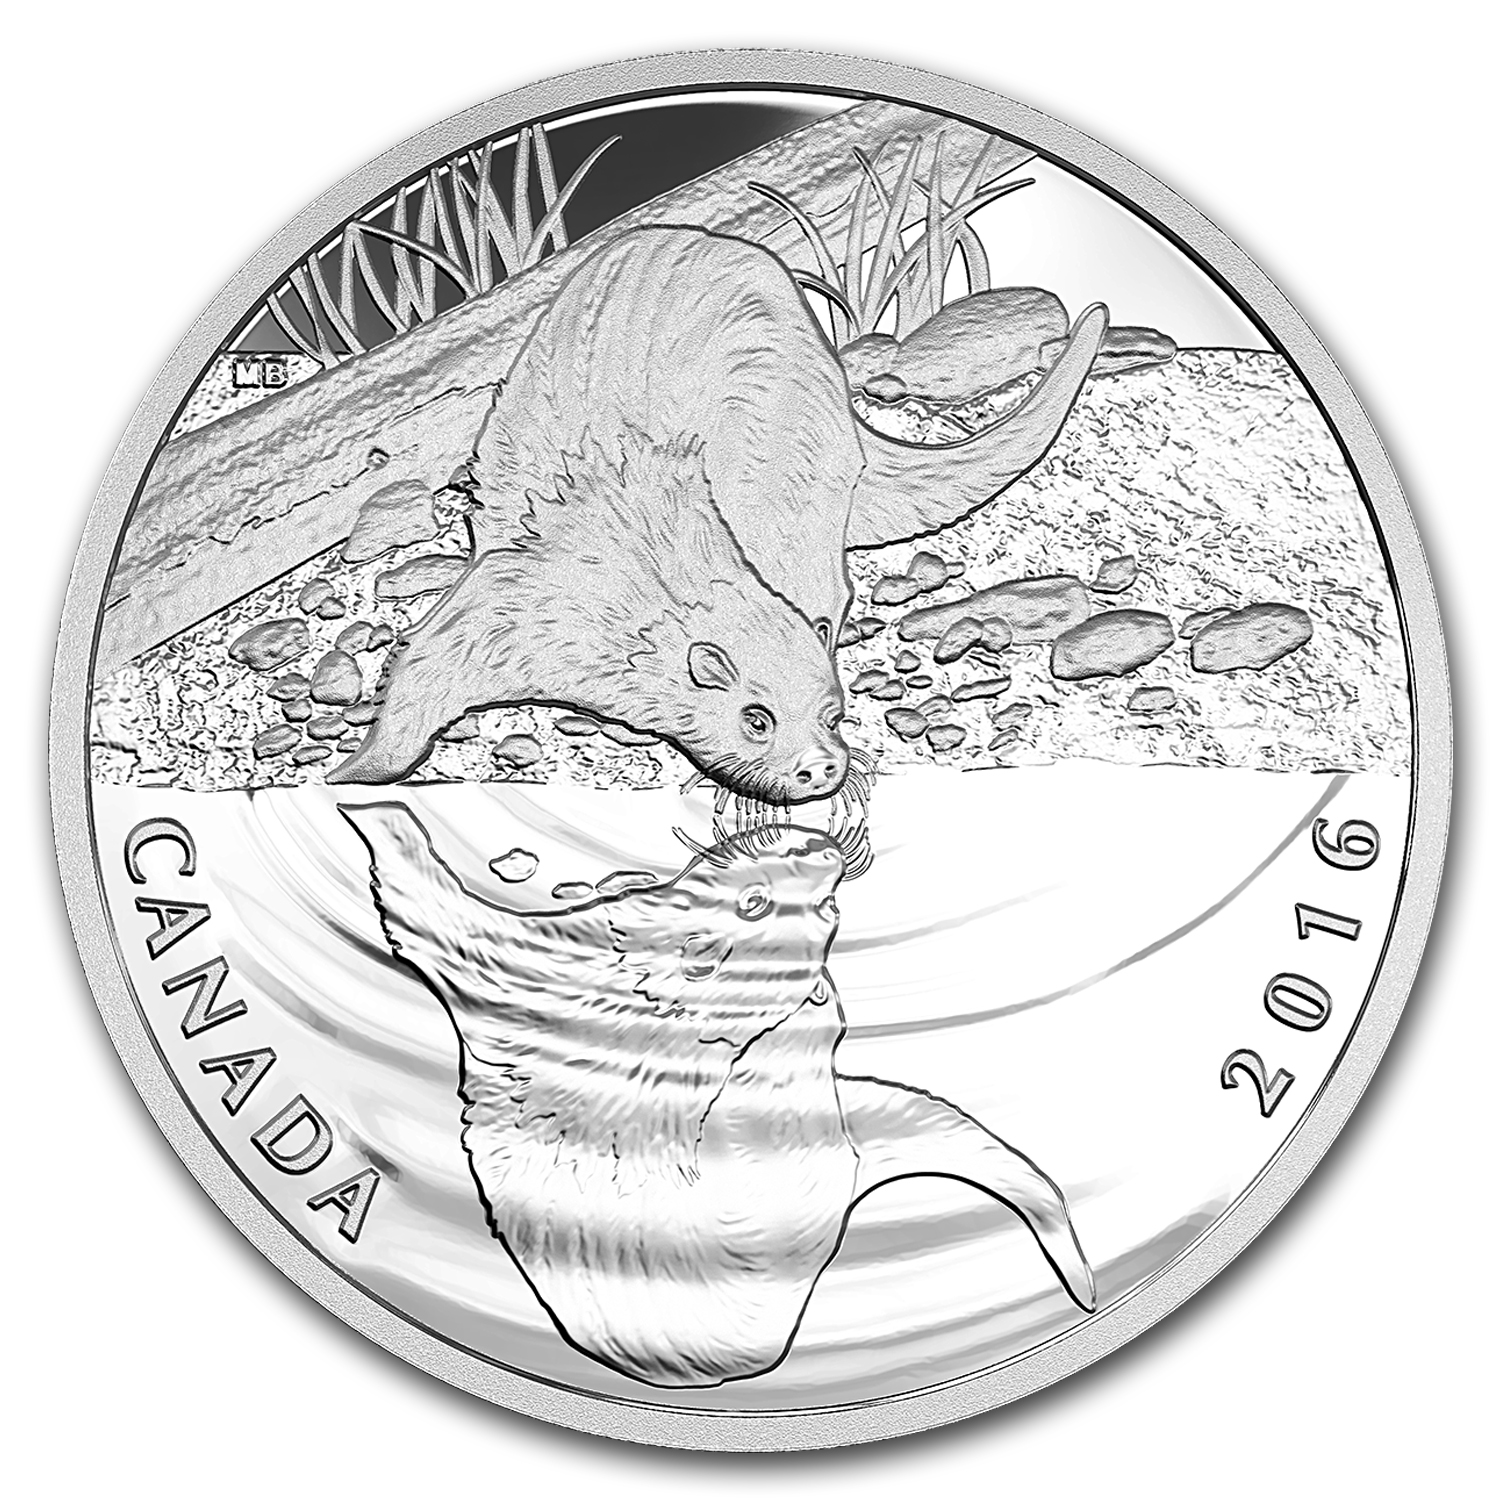 2016 Canada 1/2 oz Proof Silver $10 Reflections Otter